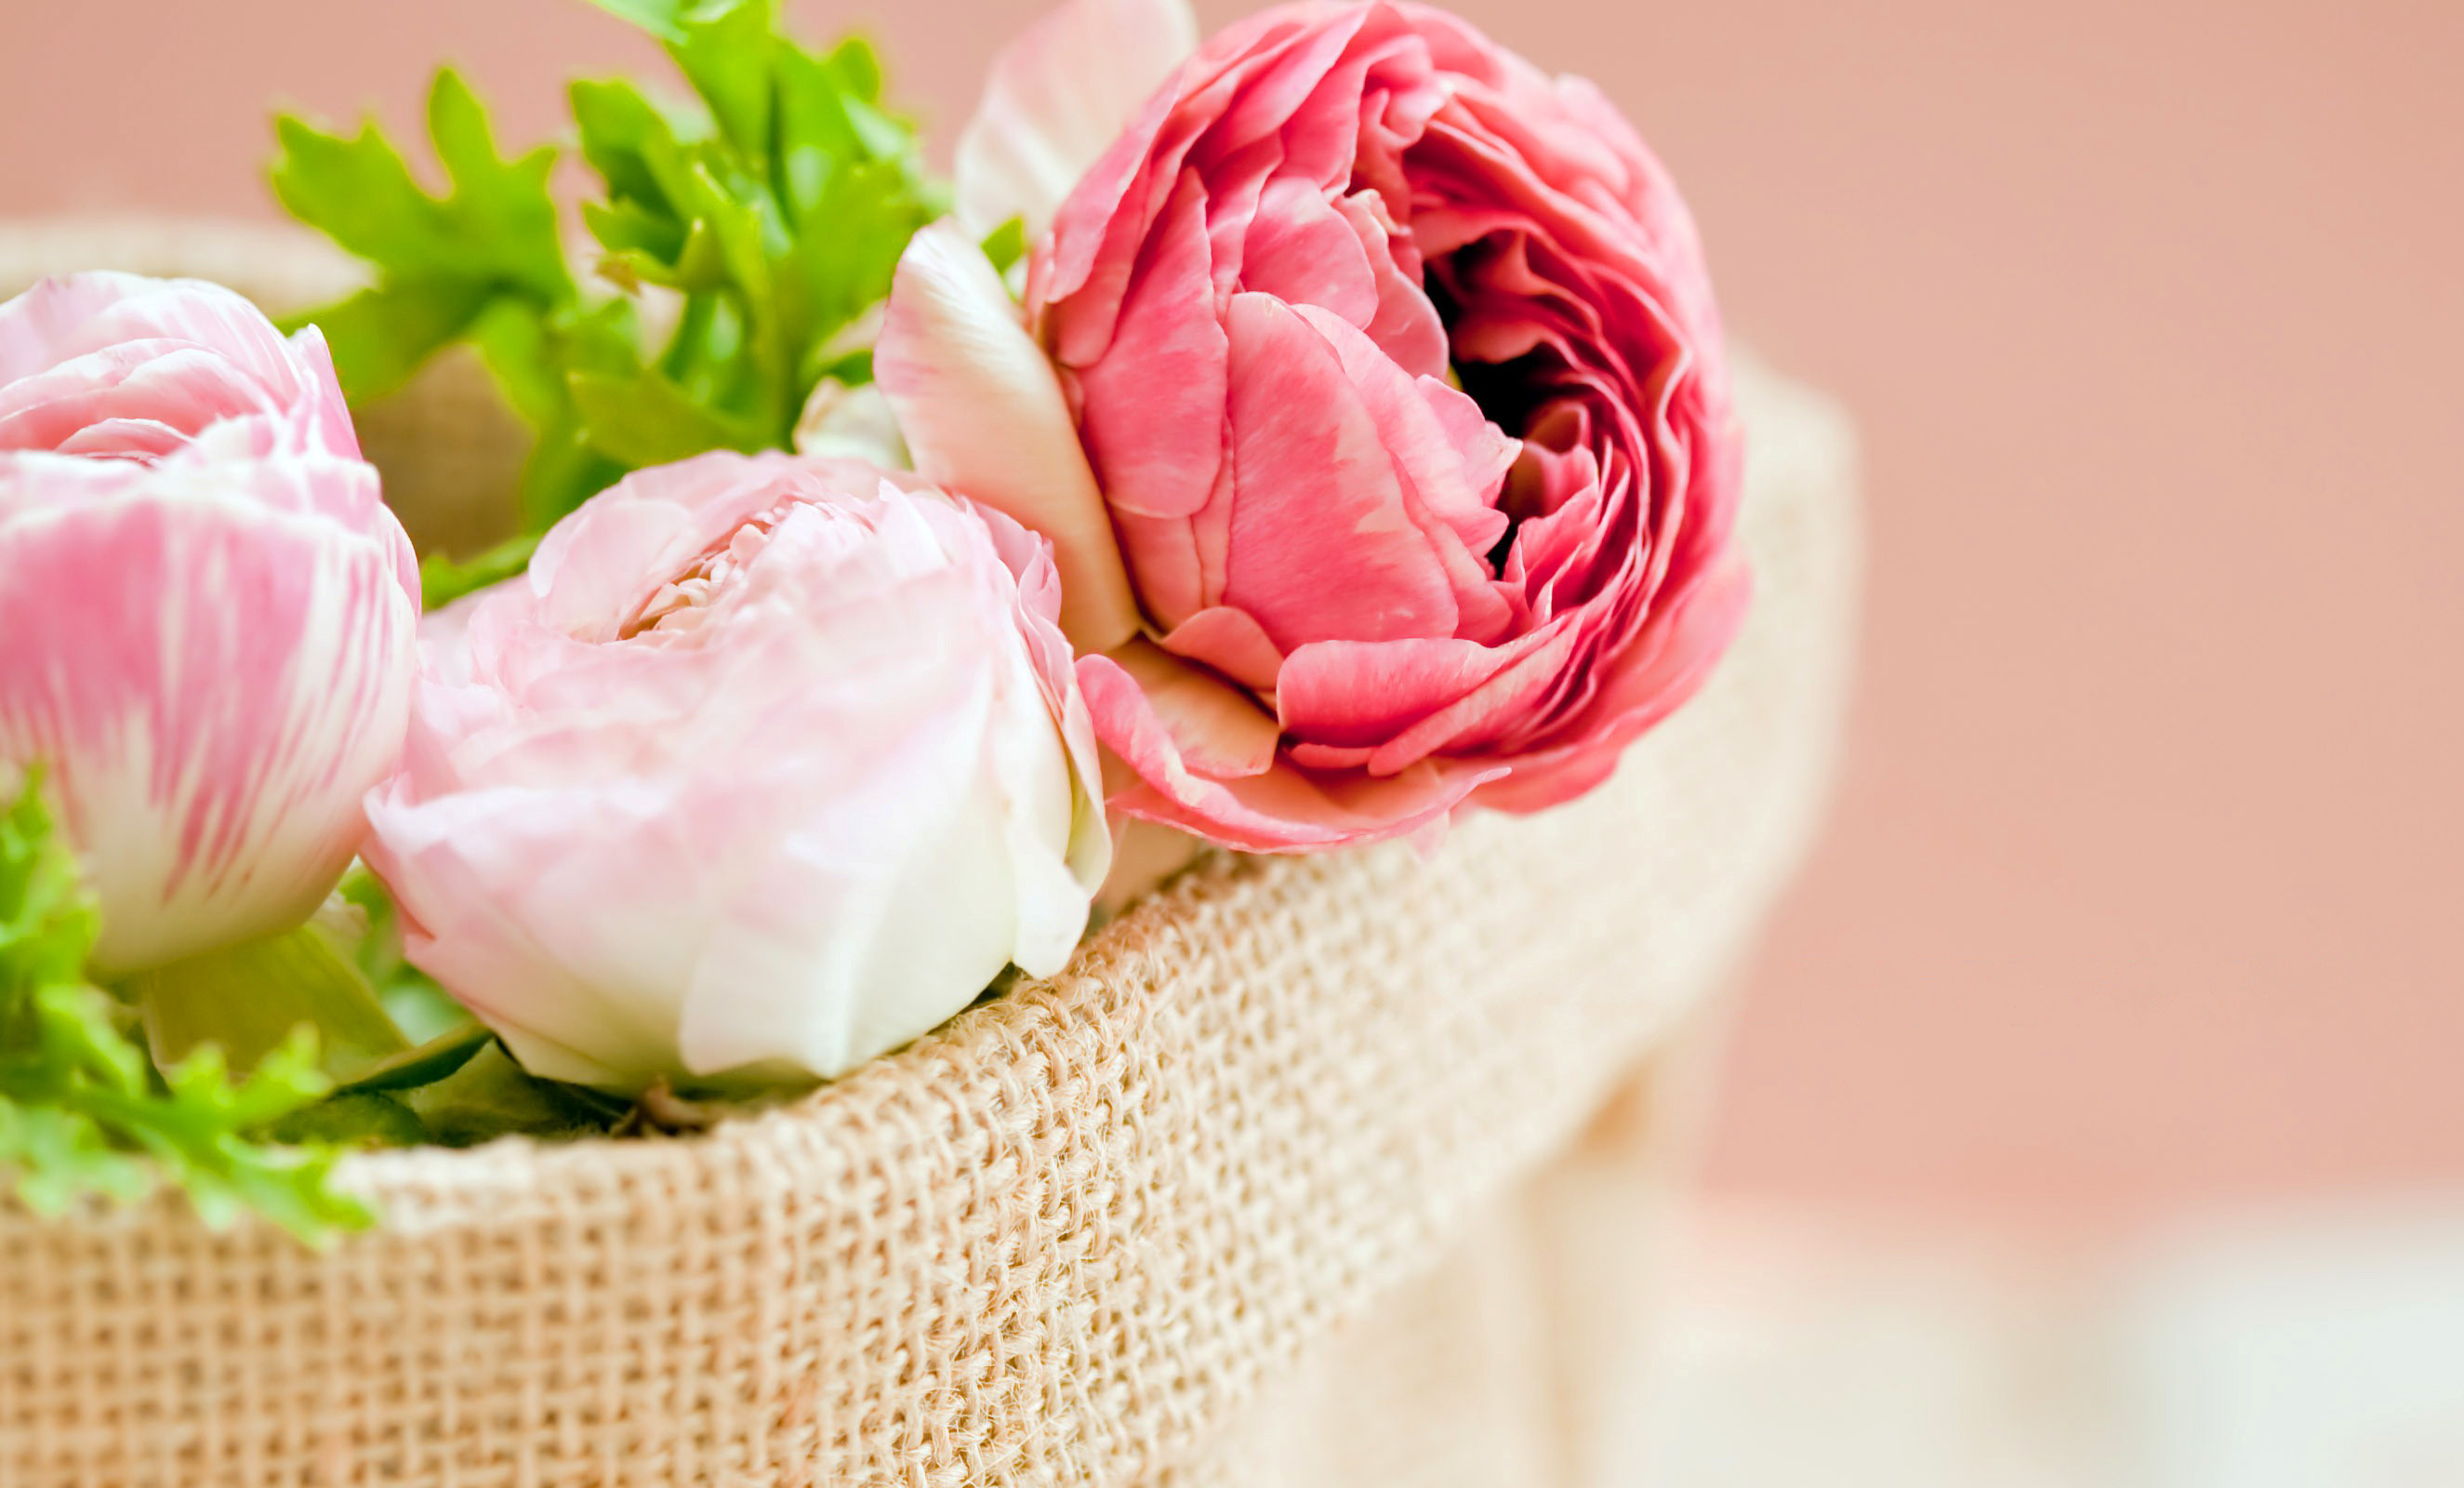 2650x1600 Peonies Pink color Flowers bokeh wallpaper background